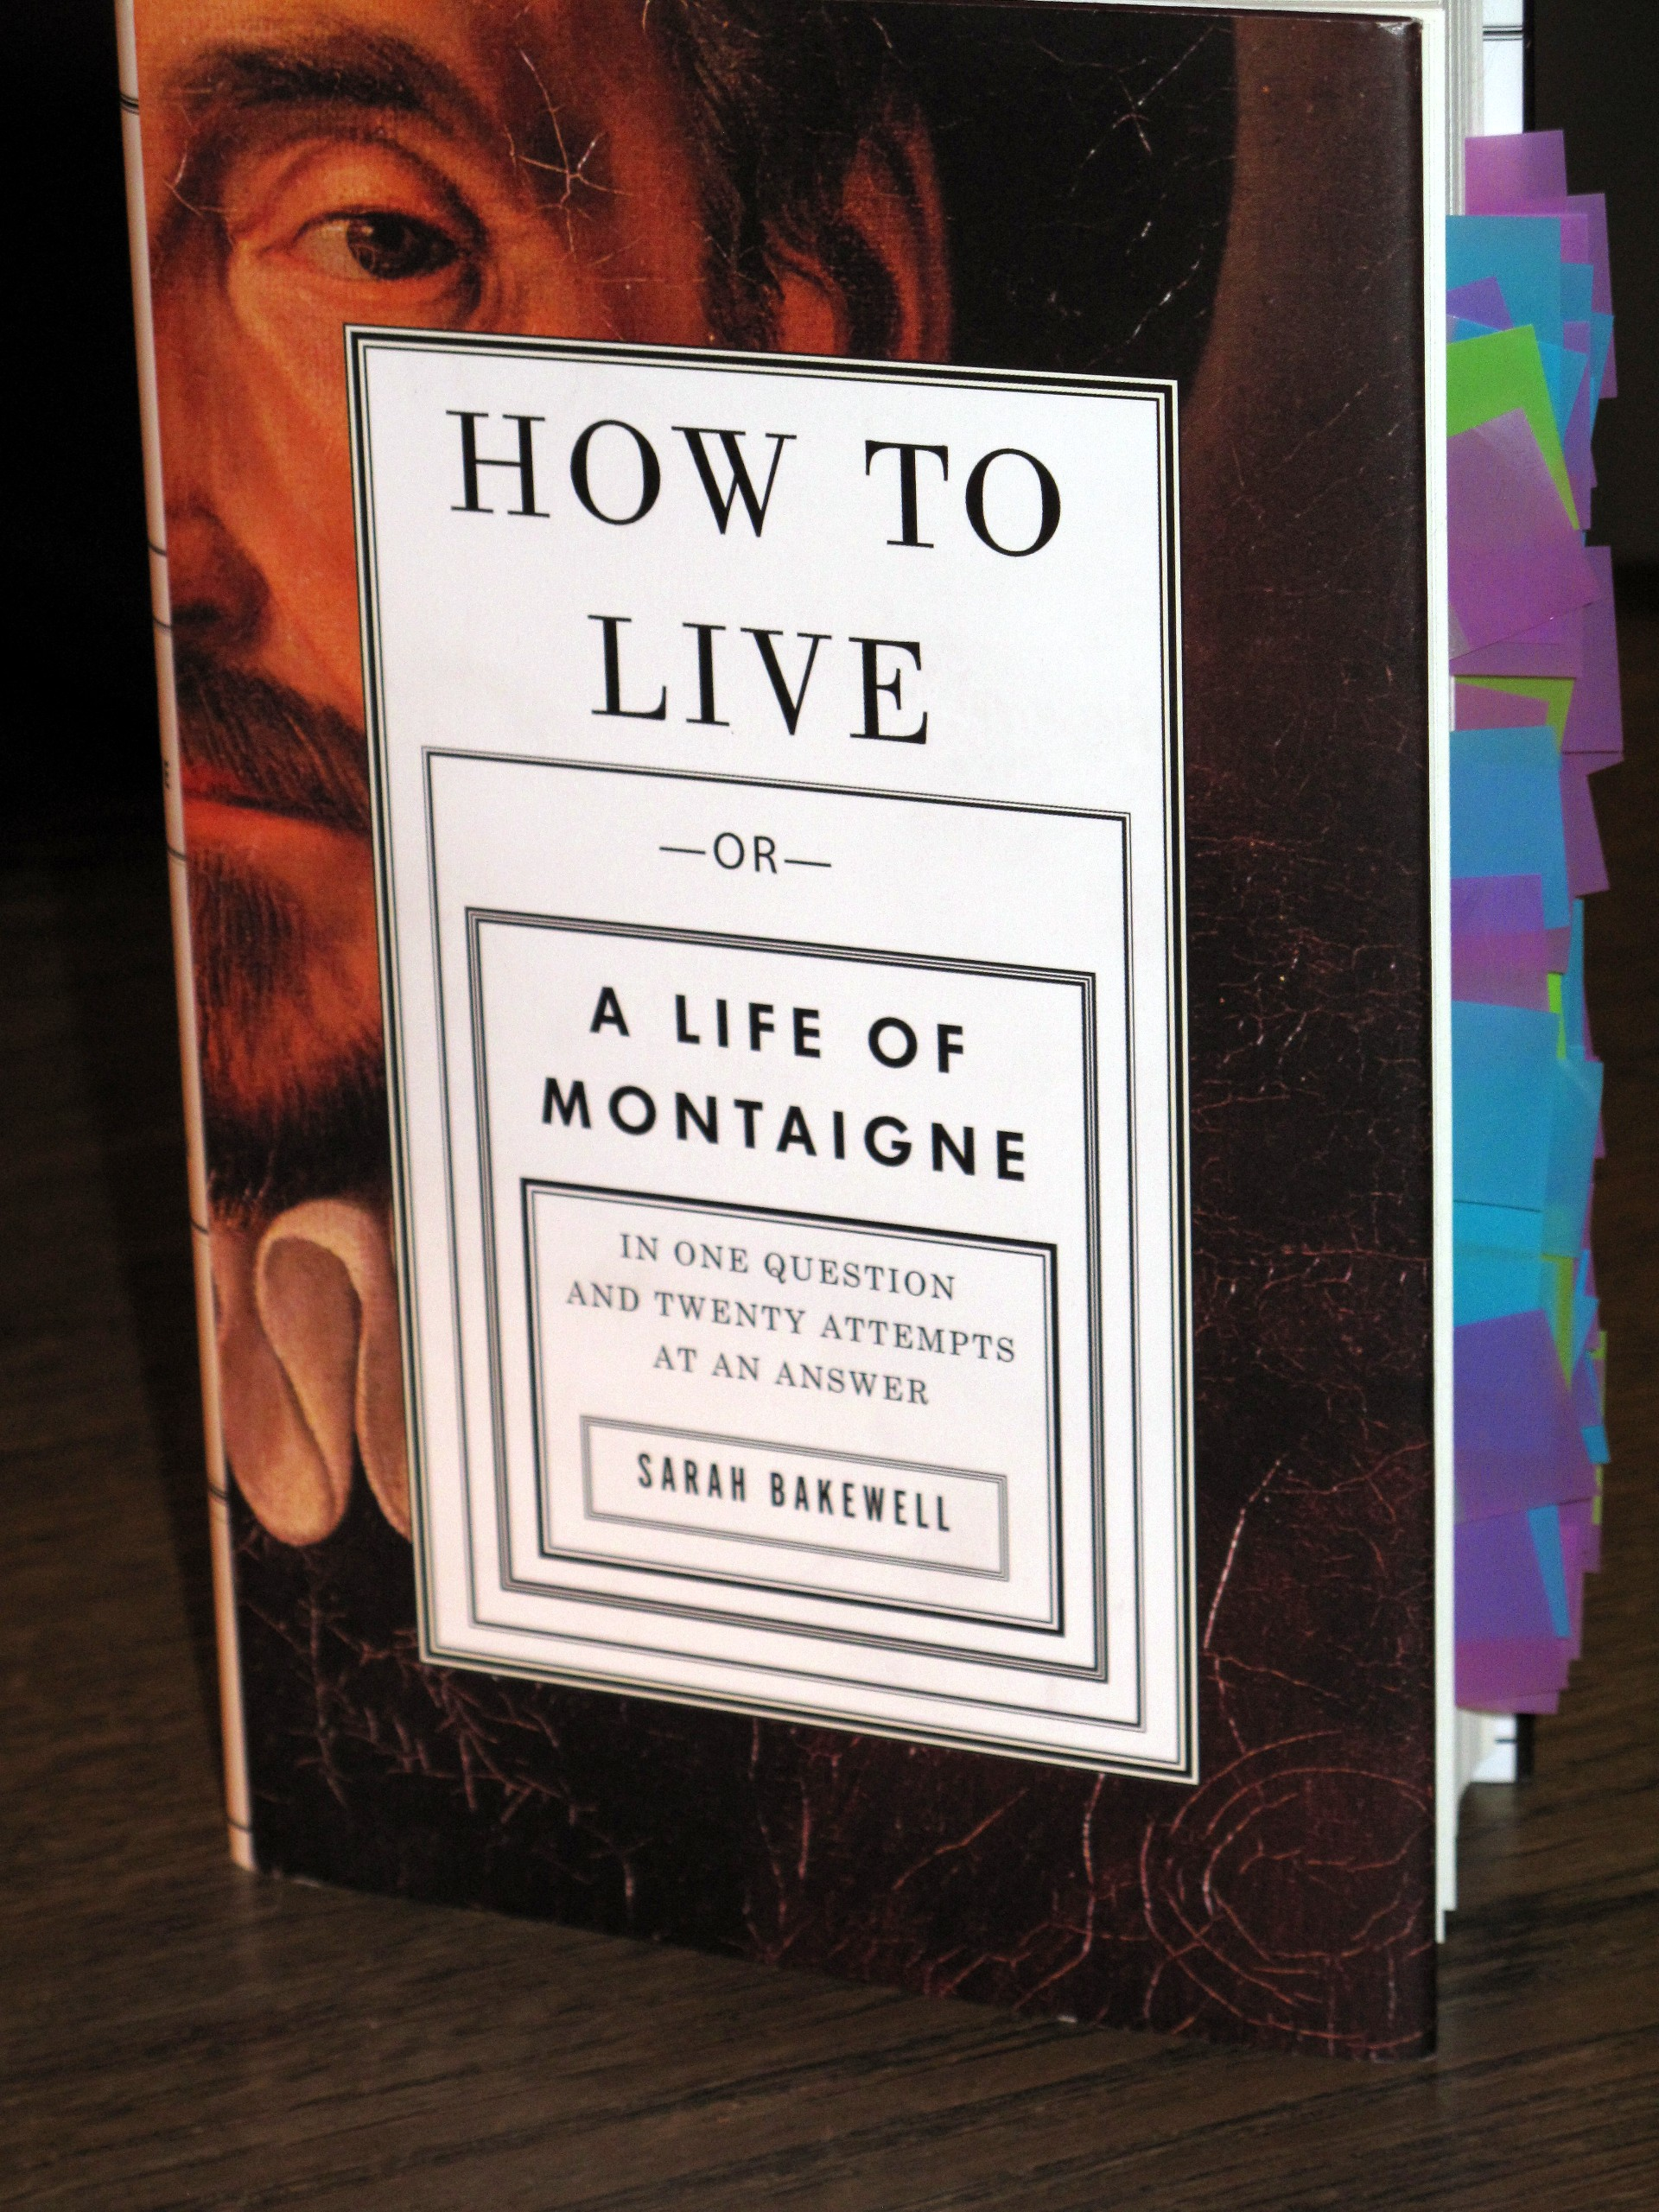 Essays of montaigne amazon. Research paper Academic Writing Service ...